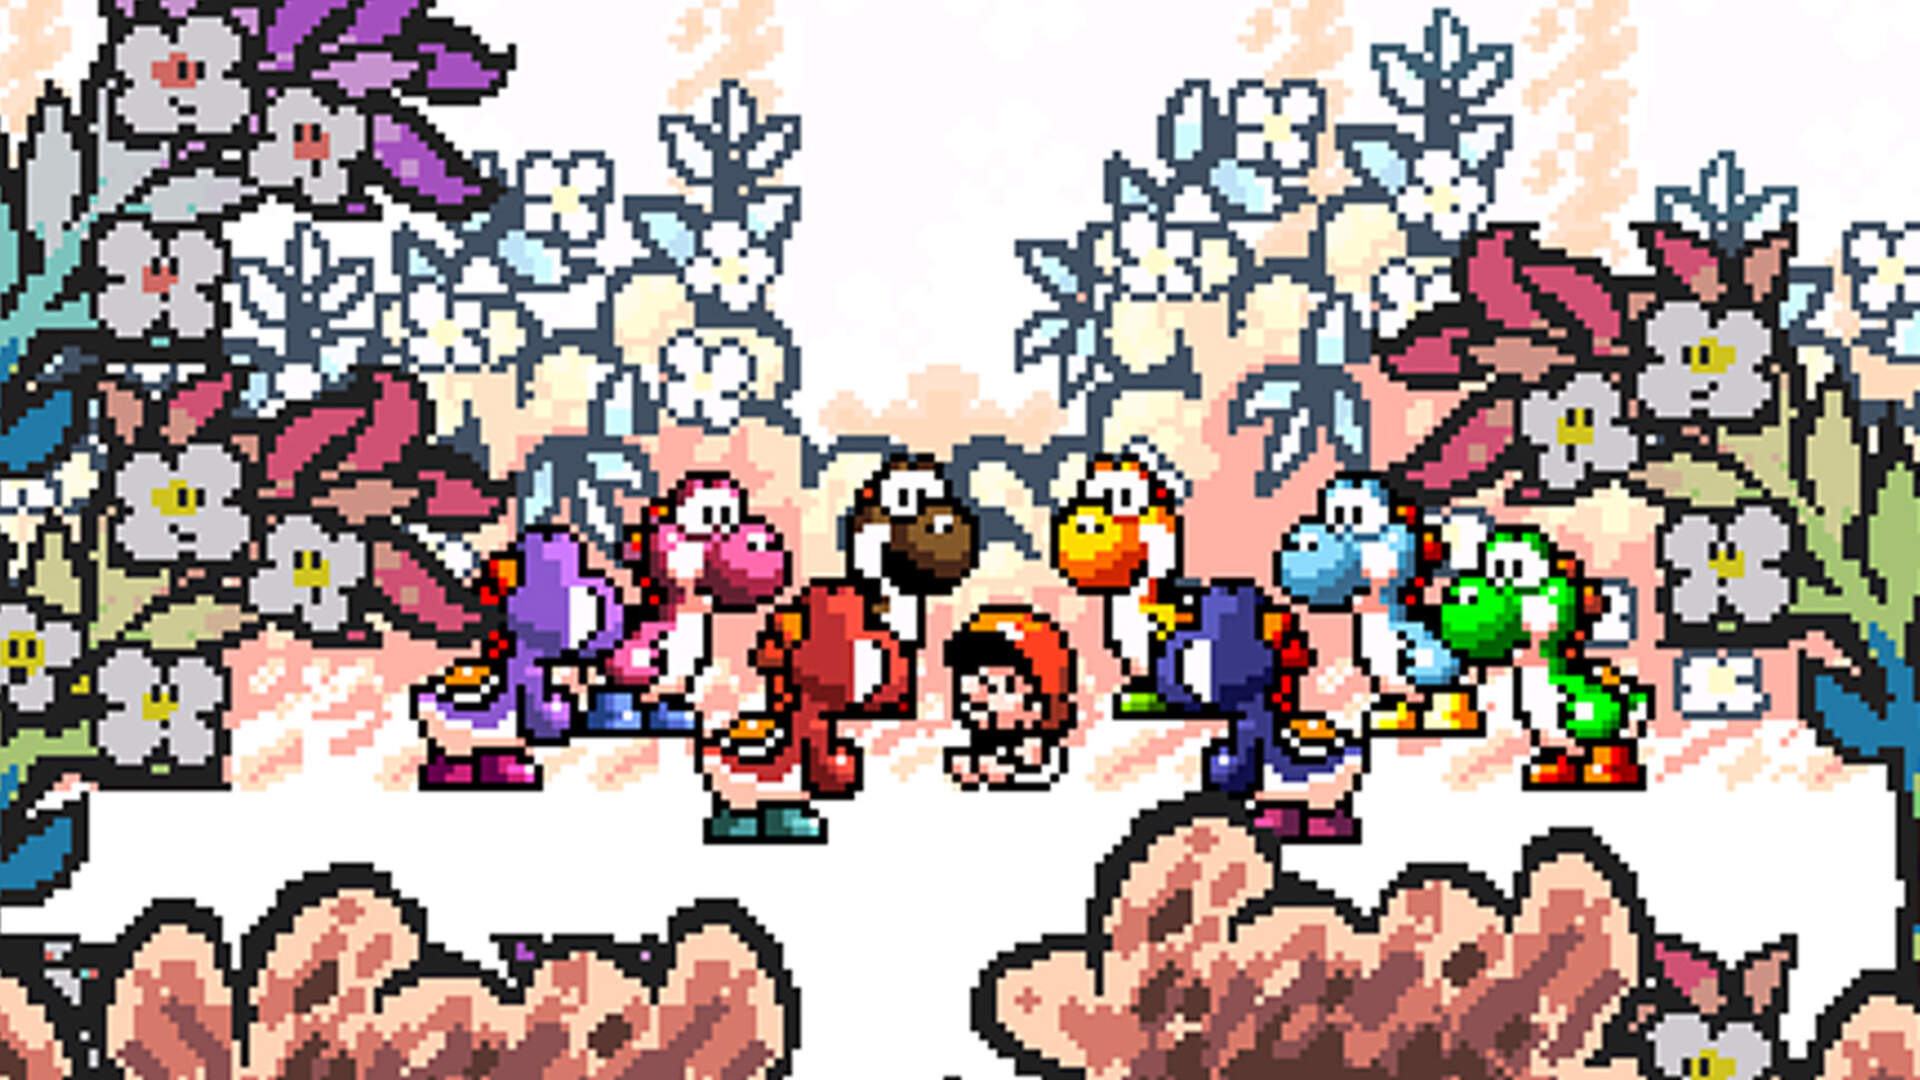 Why Super Mario World 2: Yoshi's Island Was Fated to Be Overlooked Despite Its Brilliance